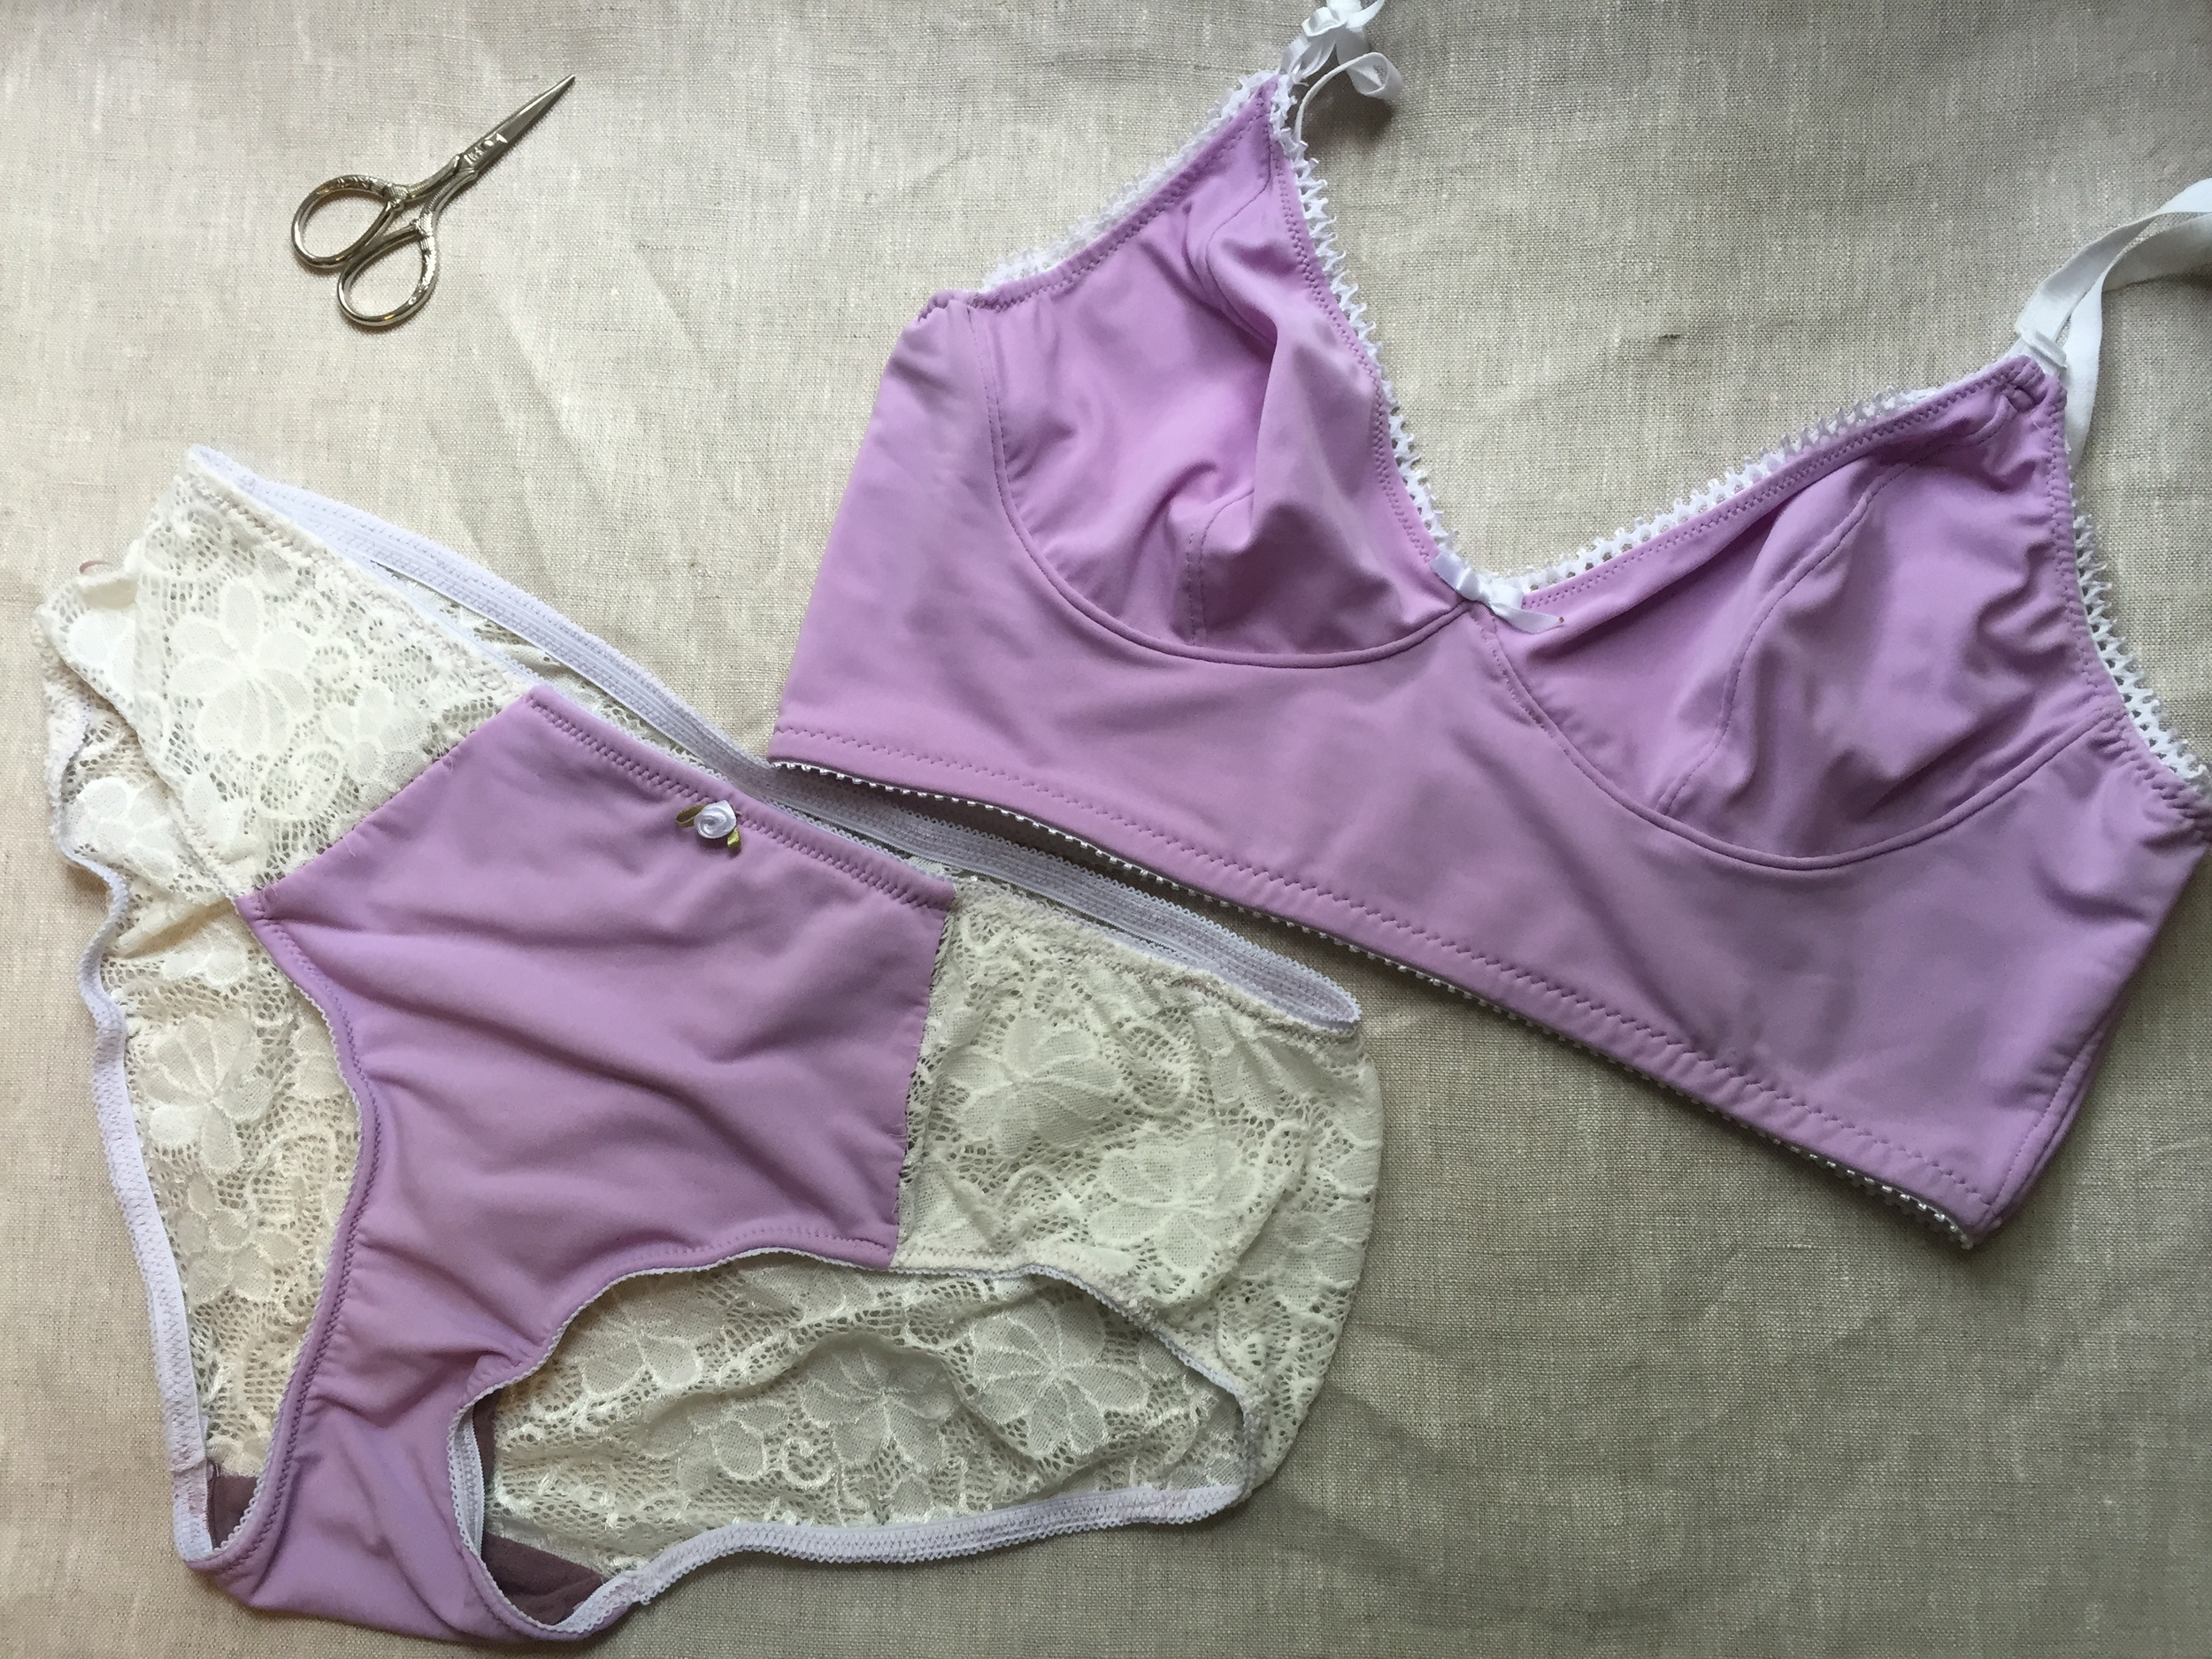 Lilac Watson Bra and Undies Sewn by Ms. Cleaver